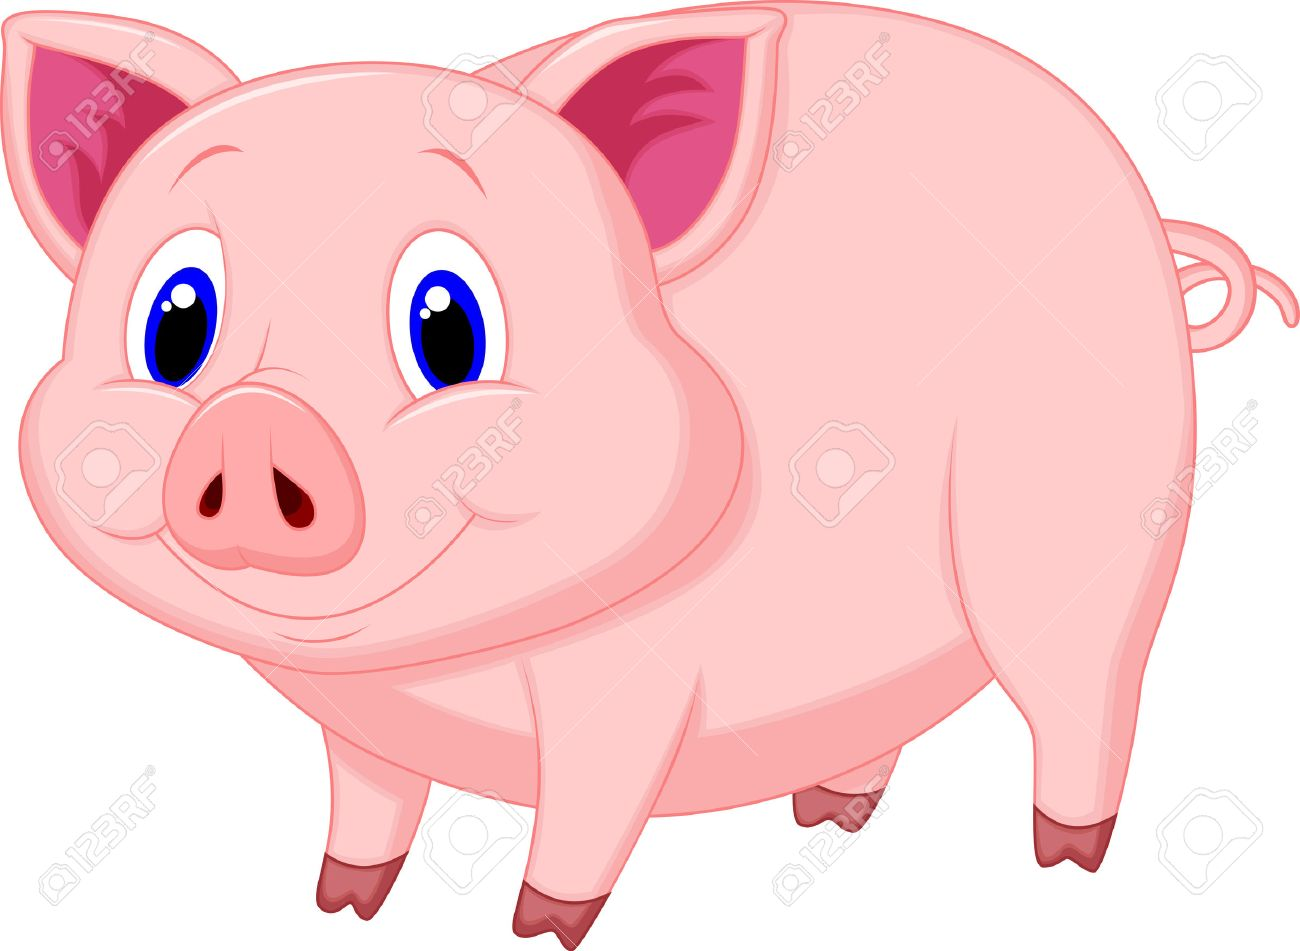 Cute Pig Cartoon Royalty Free Cliparts Vectors And Stock Illustration Image 23462839